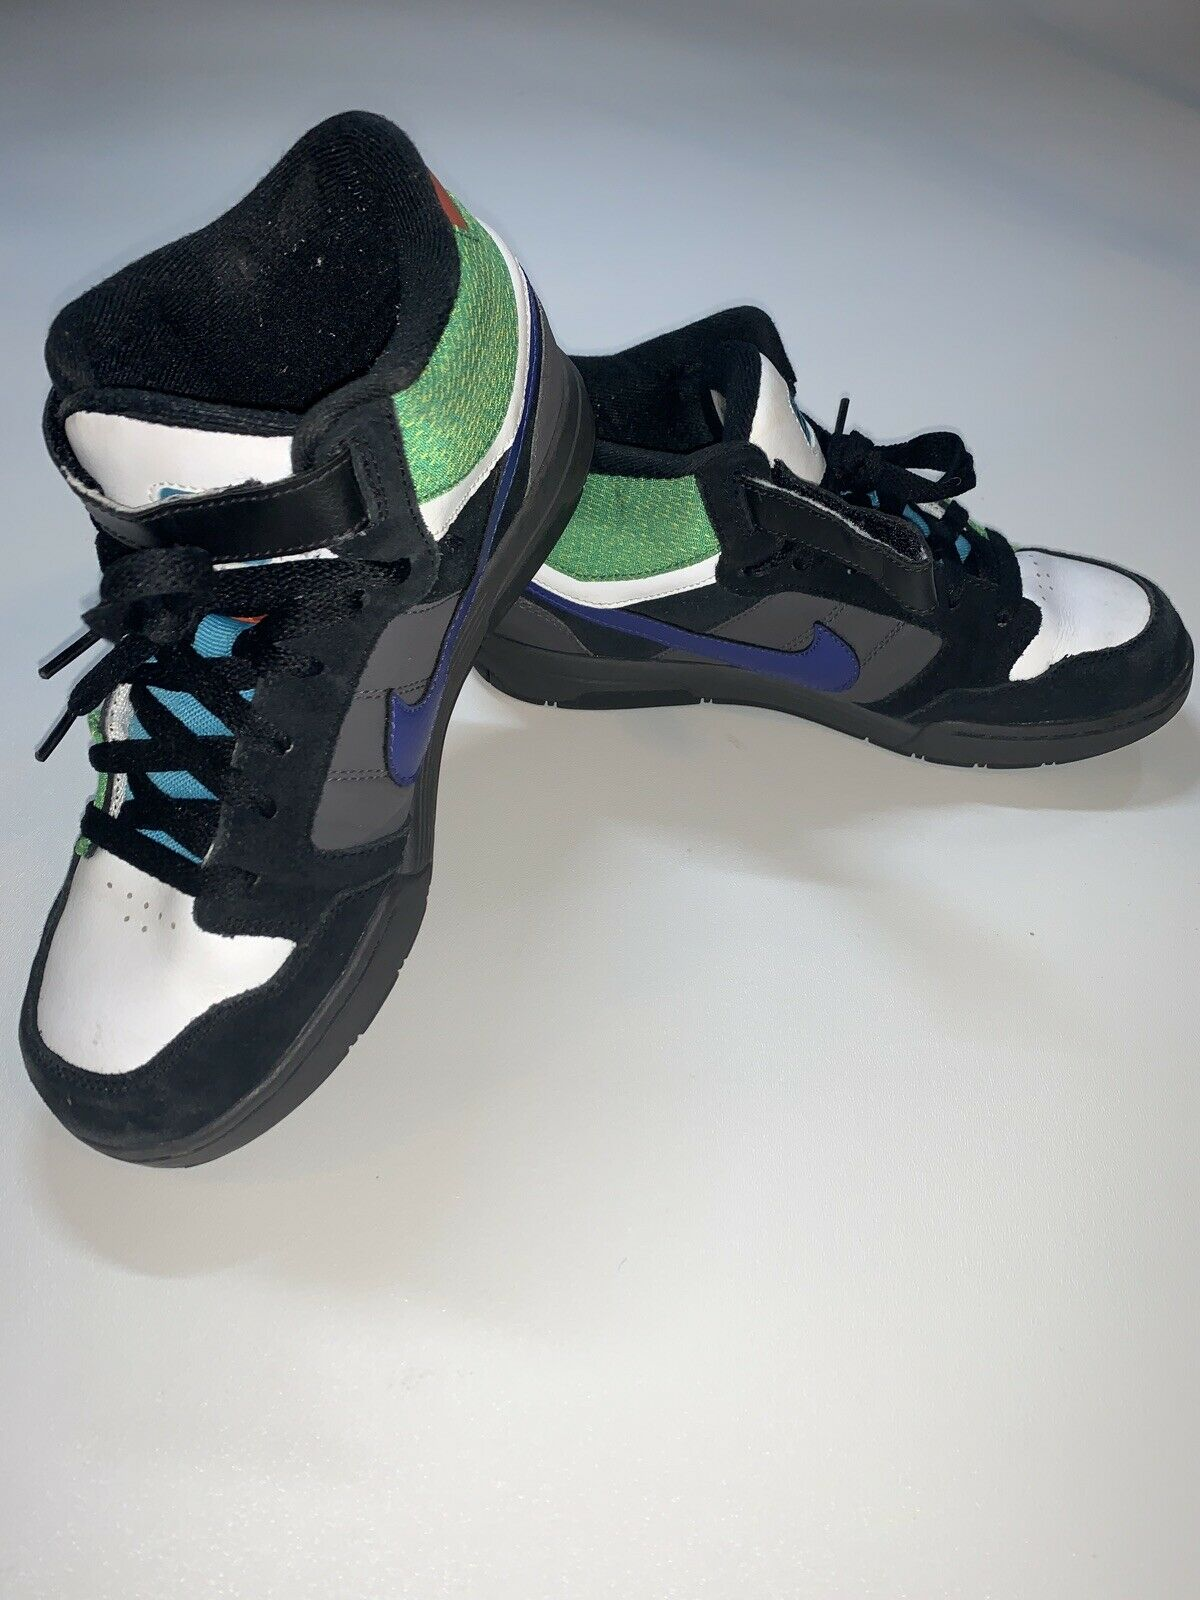 Nike 6.0 Youth Lo-top Dunks Size 5y for